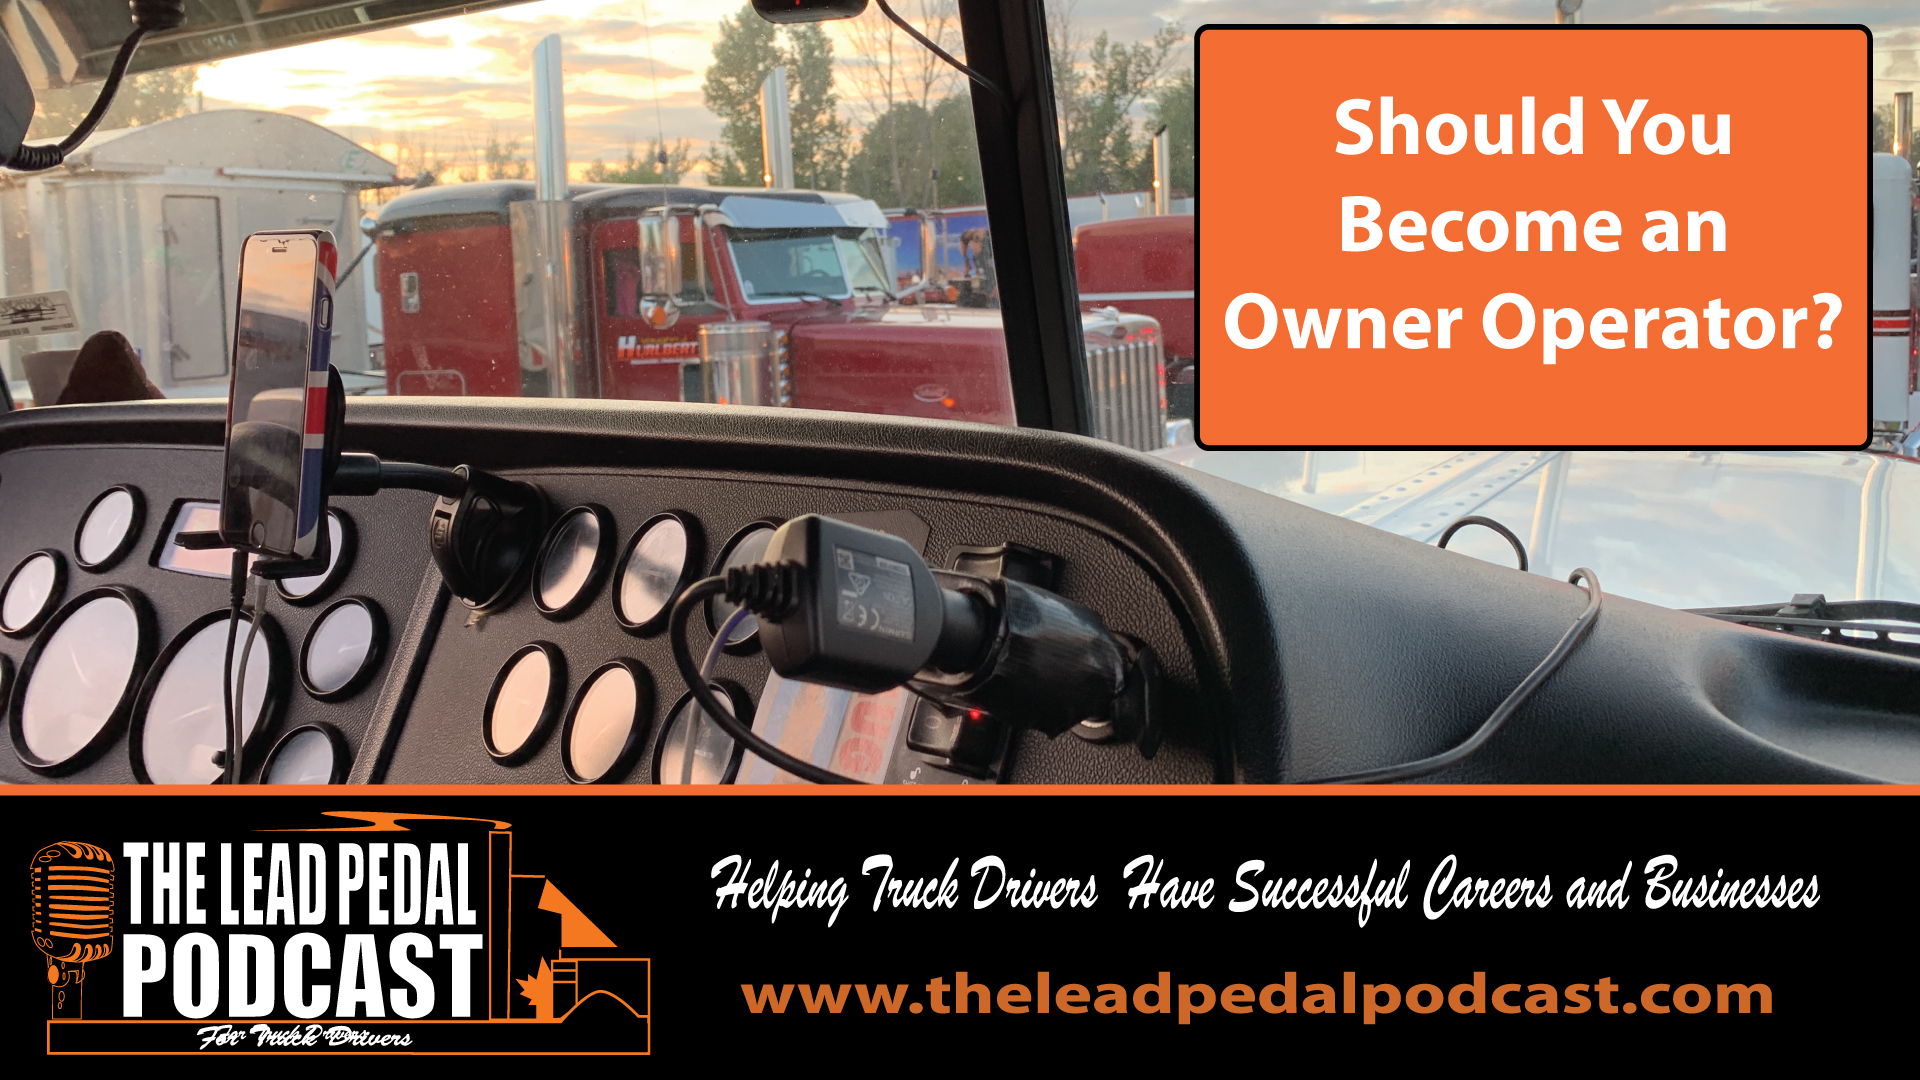 Should you become an owner operator